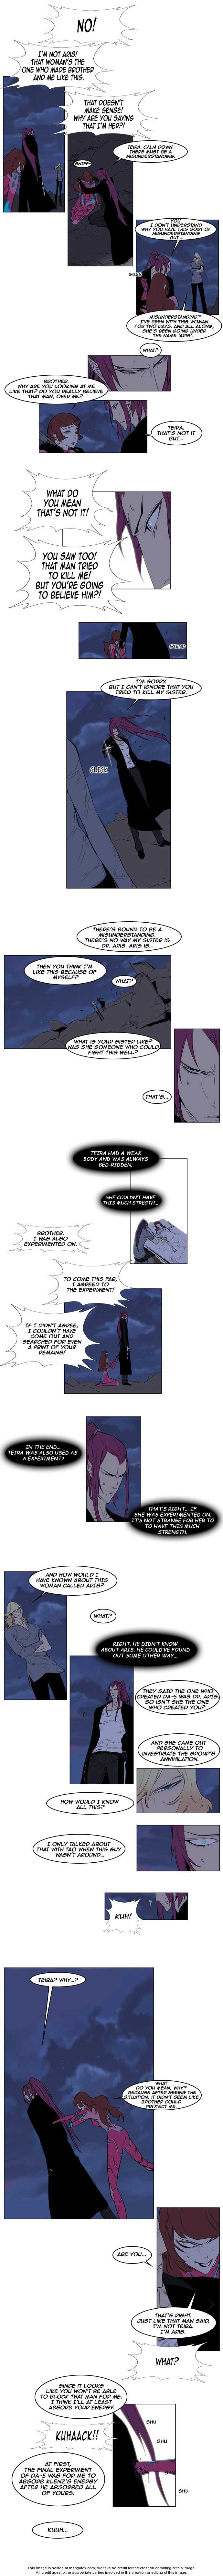 Noblesse 151 Page 2